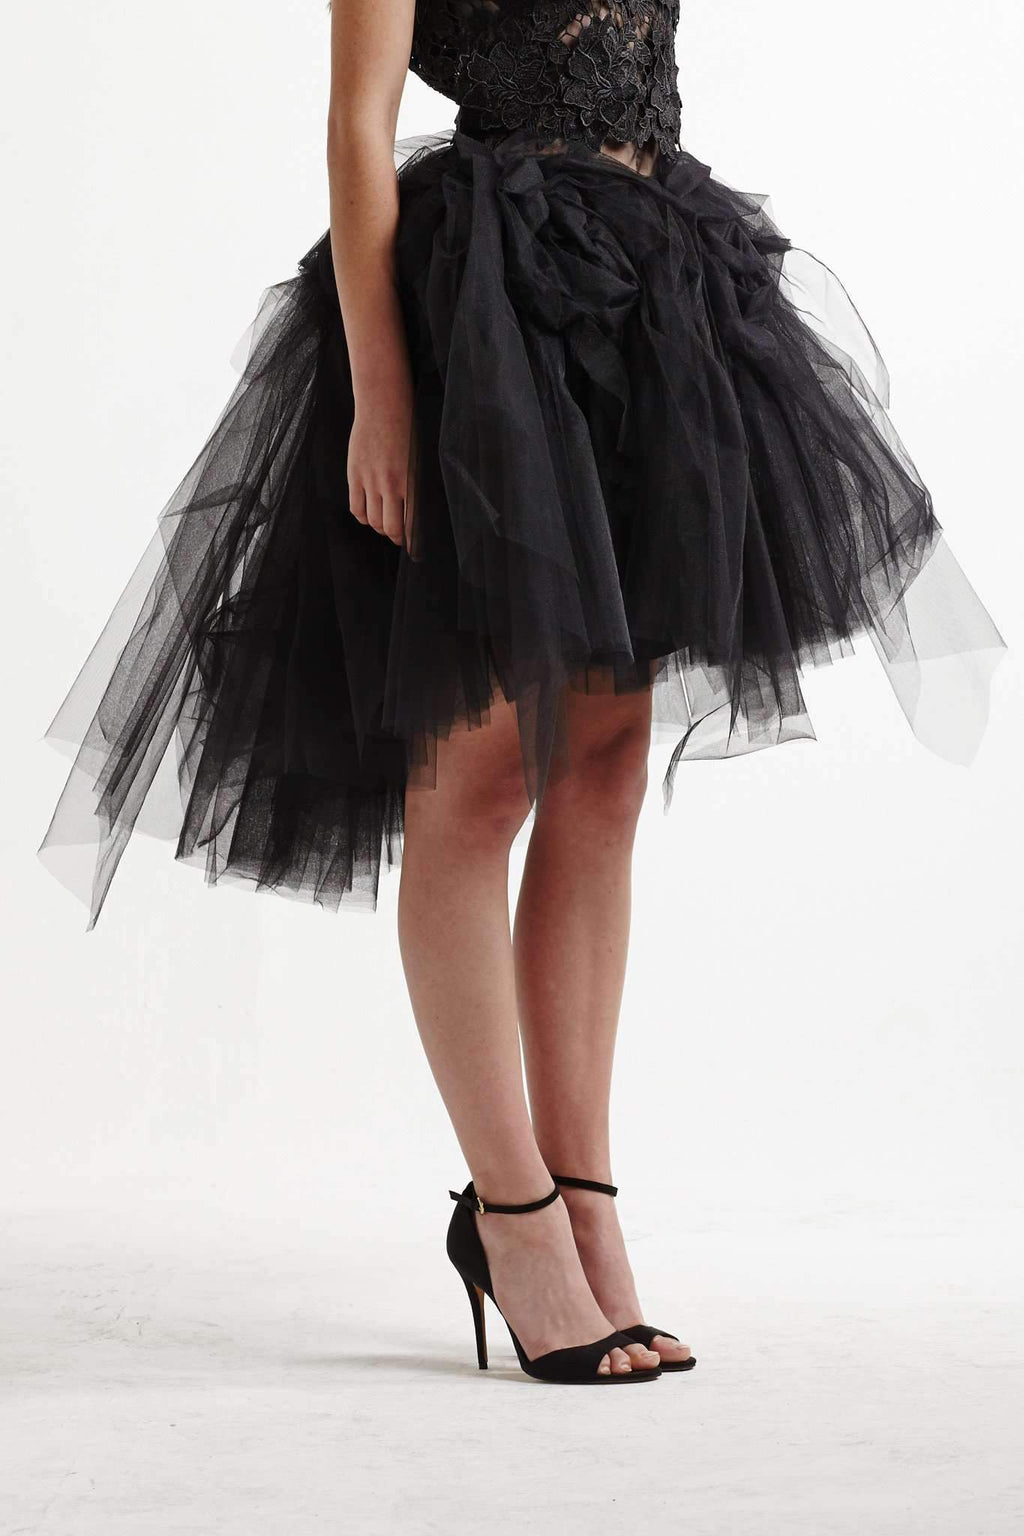 Lexi Faith Rosette Full Skirt in Black Tulle - Miko + Mollie